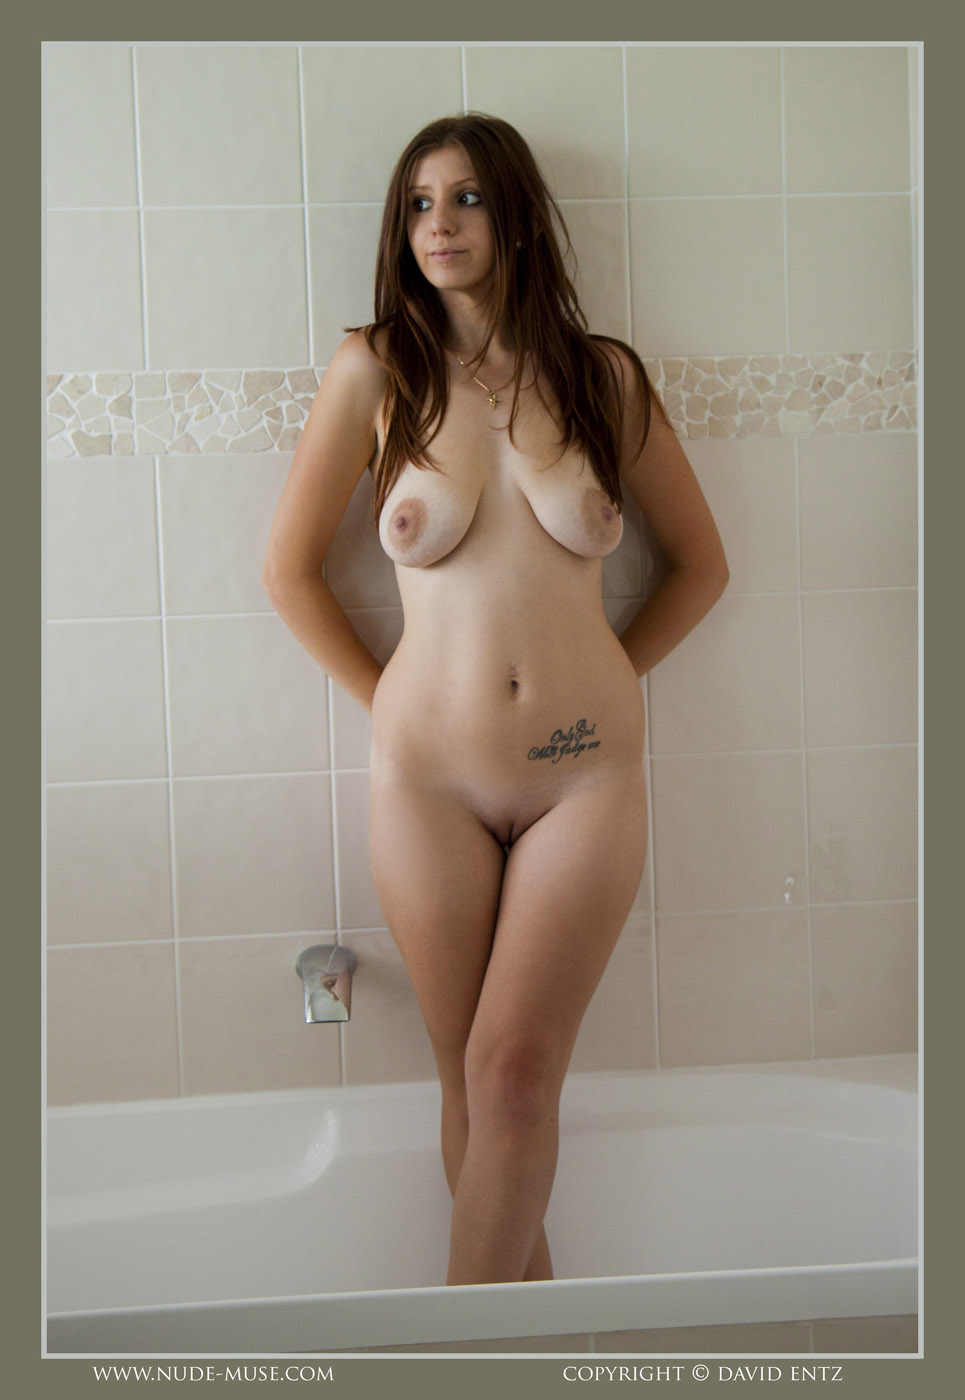 Nude muse Annabel